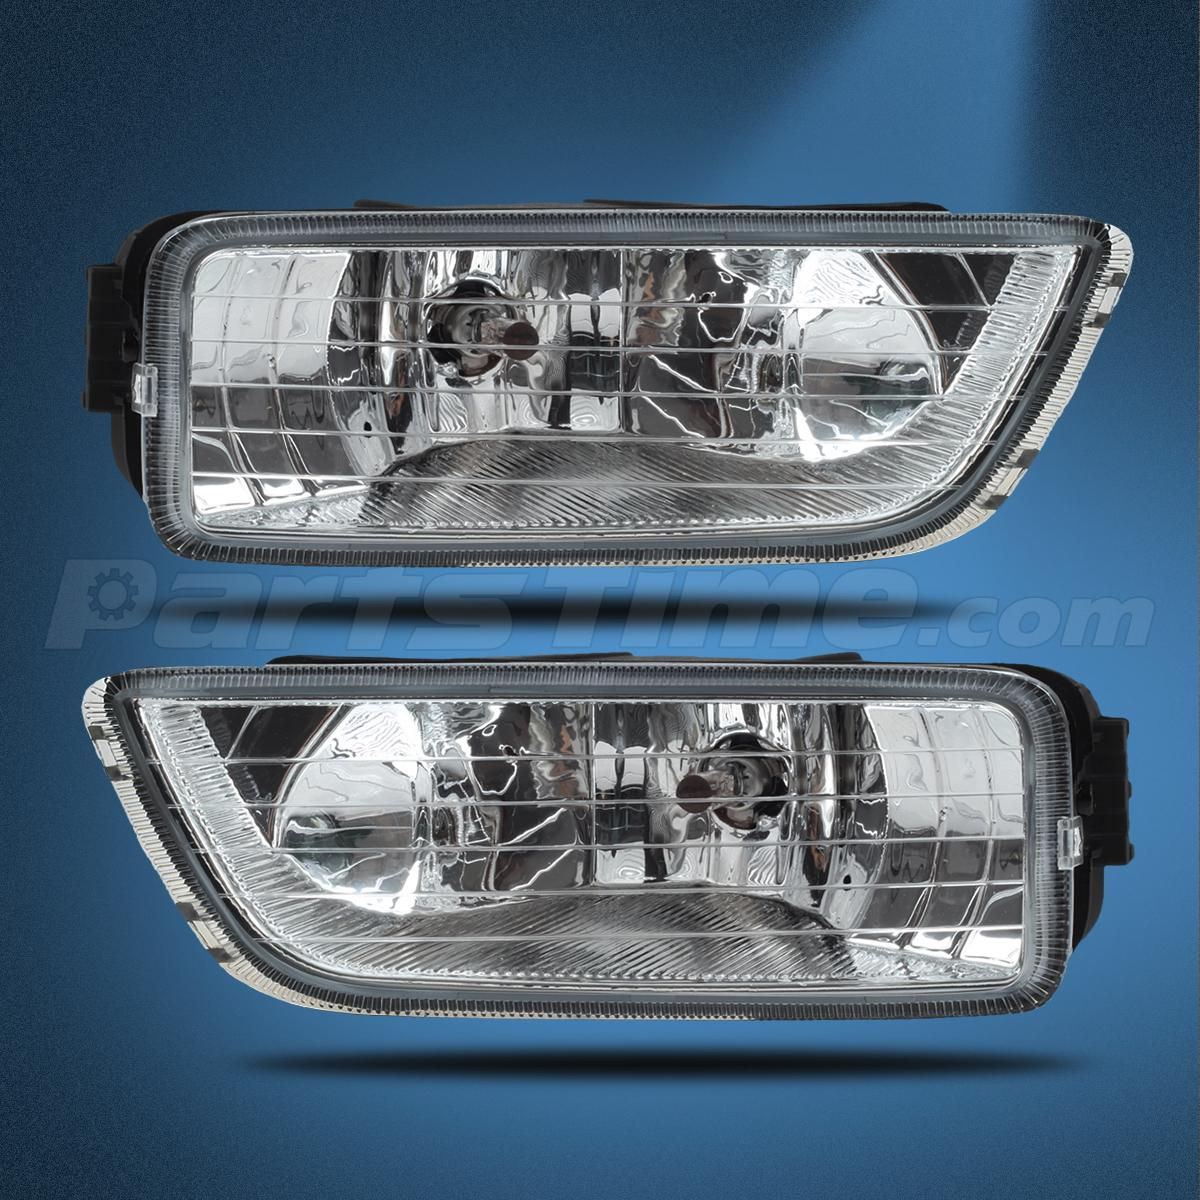 New Fog Light For Acura TL 2004 2008 Honda Accord 2003